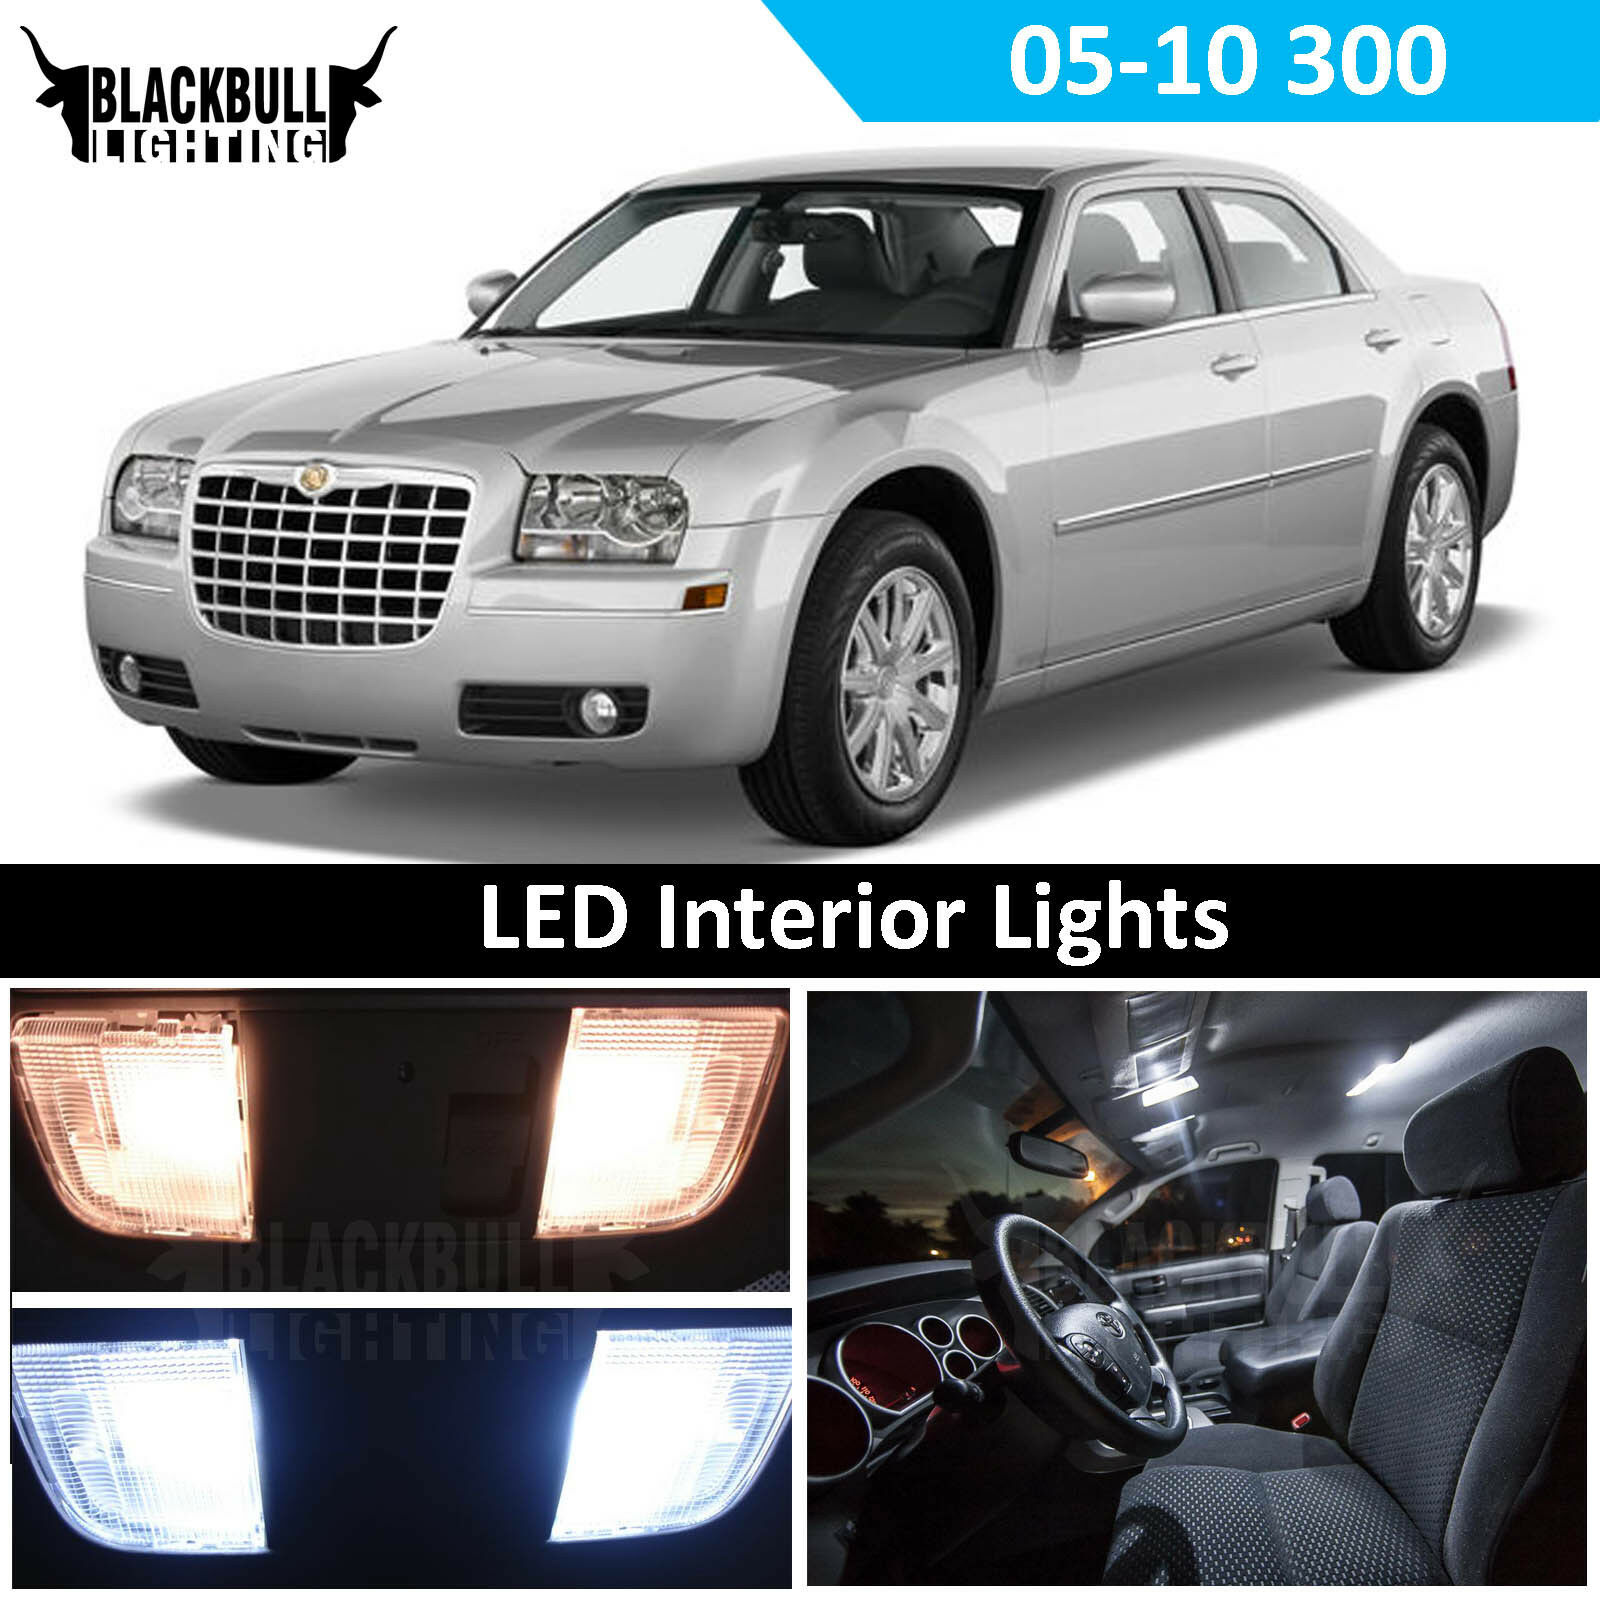 Details About White Led Interior Light Replacement Kit For 2005 2010 Chrysler 300 12 Bulbs